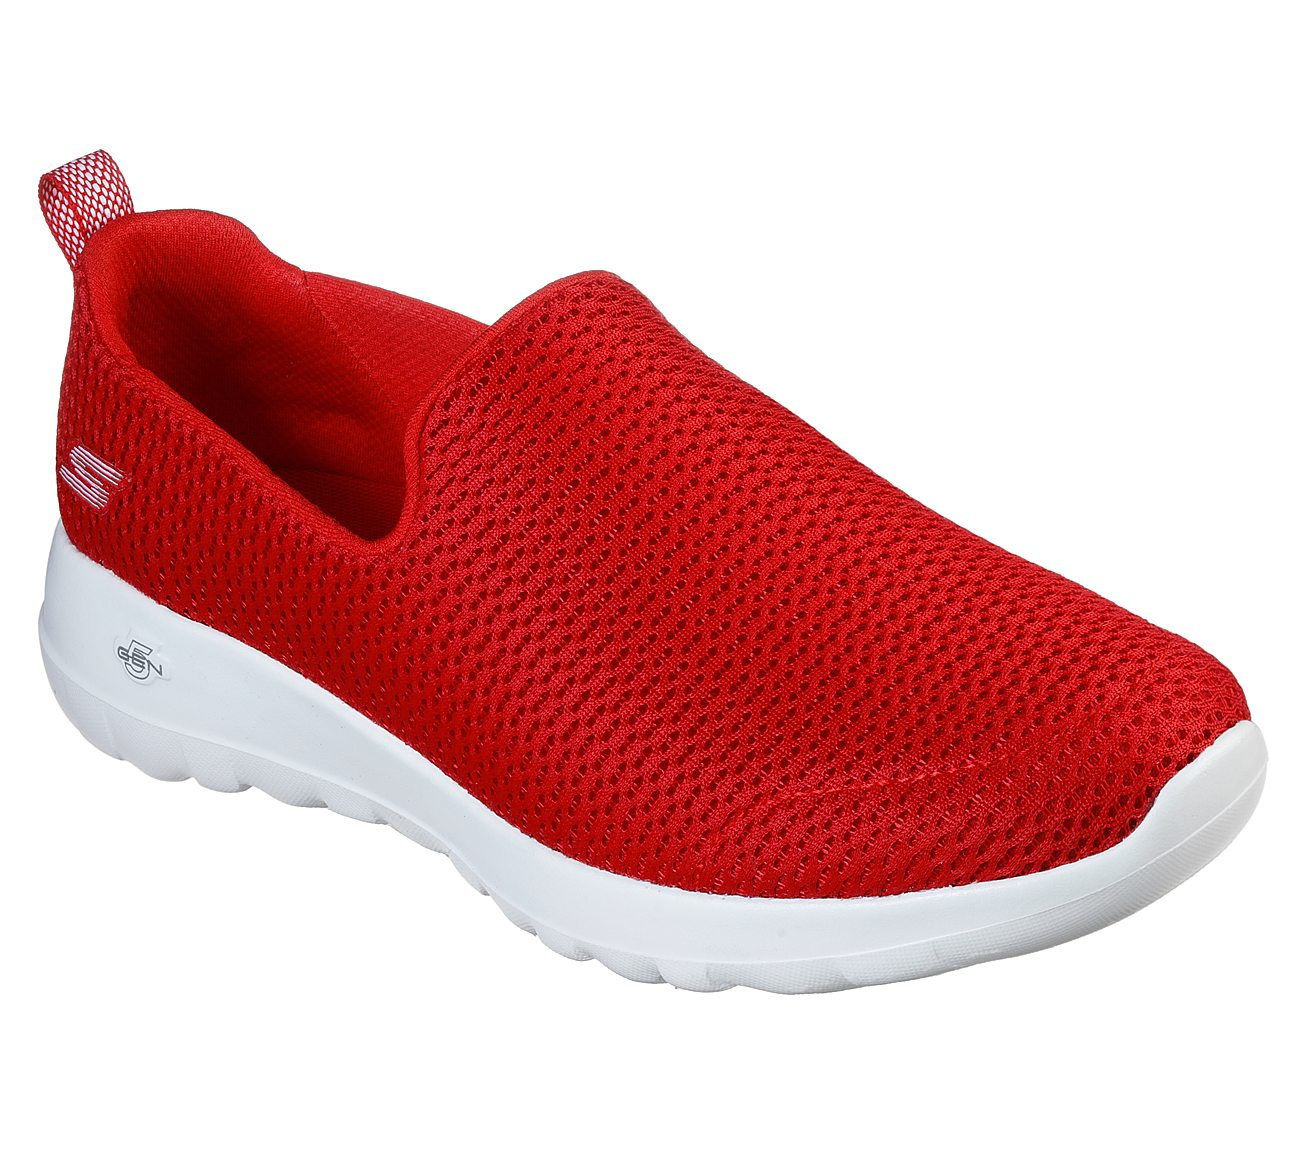 7213ef636f53 Buy SKECHERS Skechers GOwalk Joy Skechers Performance Shoes only  60.00